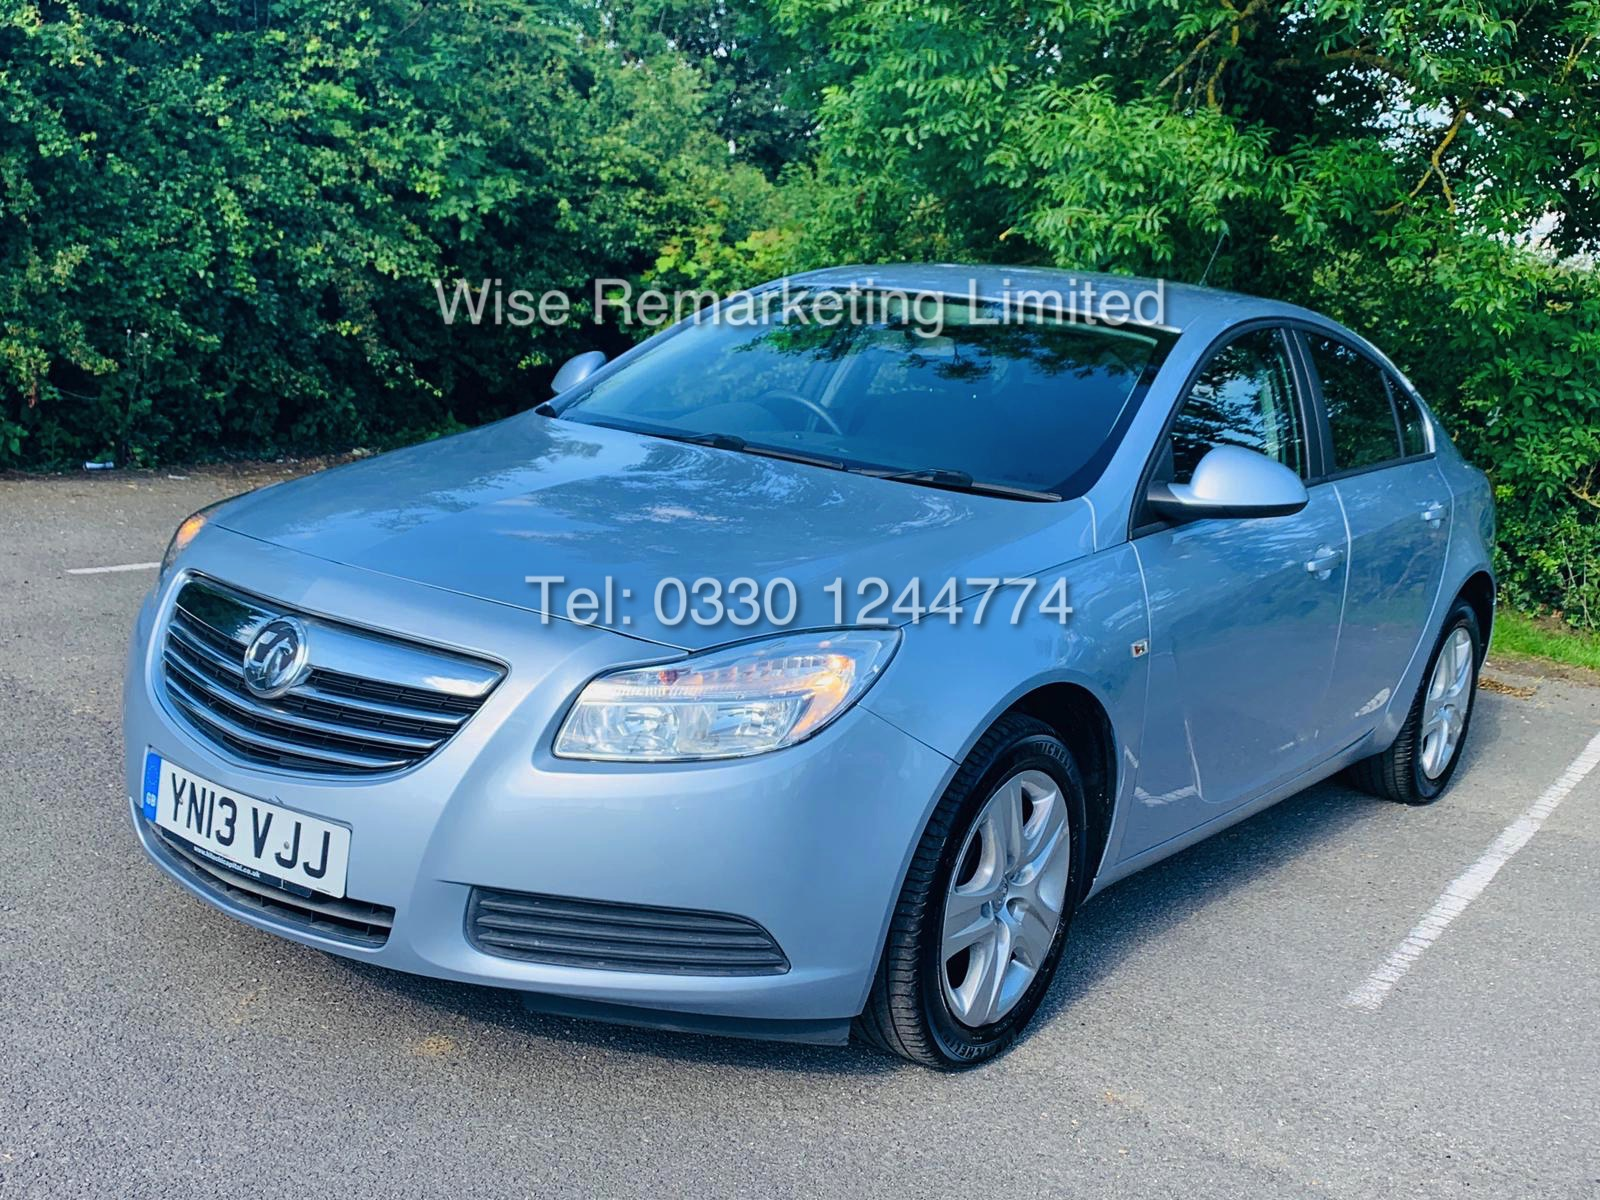 VAUXHALL INSIGNIA 2.0 CDTI ECOFLEX ES 2013 *FSH* 1 OWNER FROM NEW - Image 3 of 30